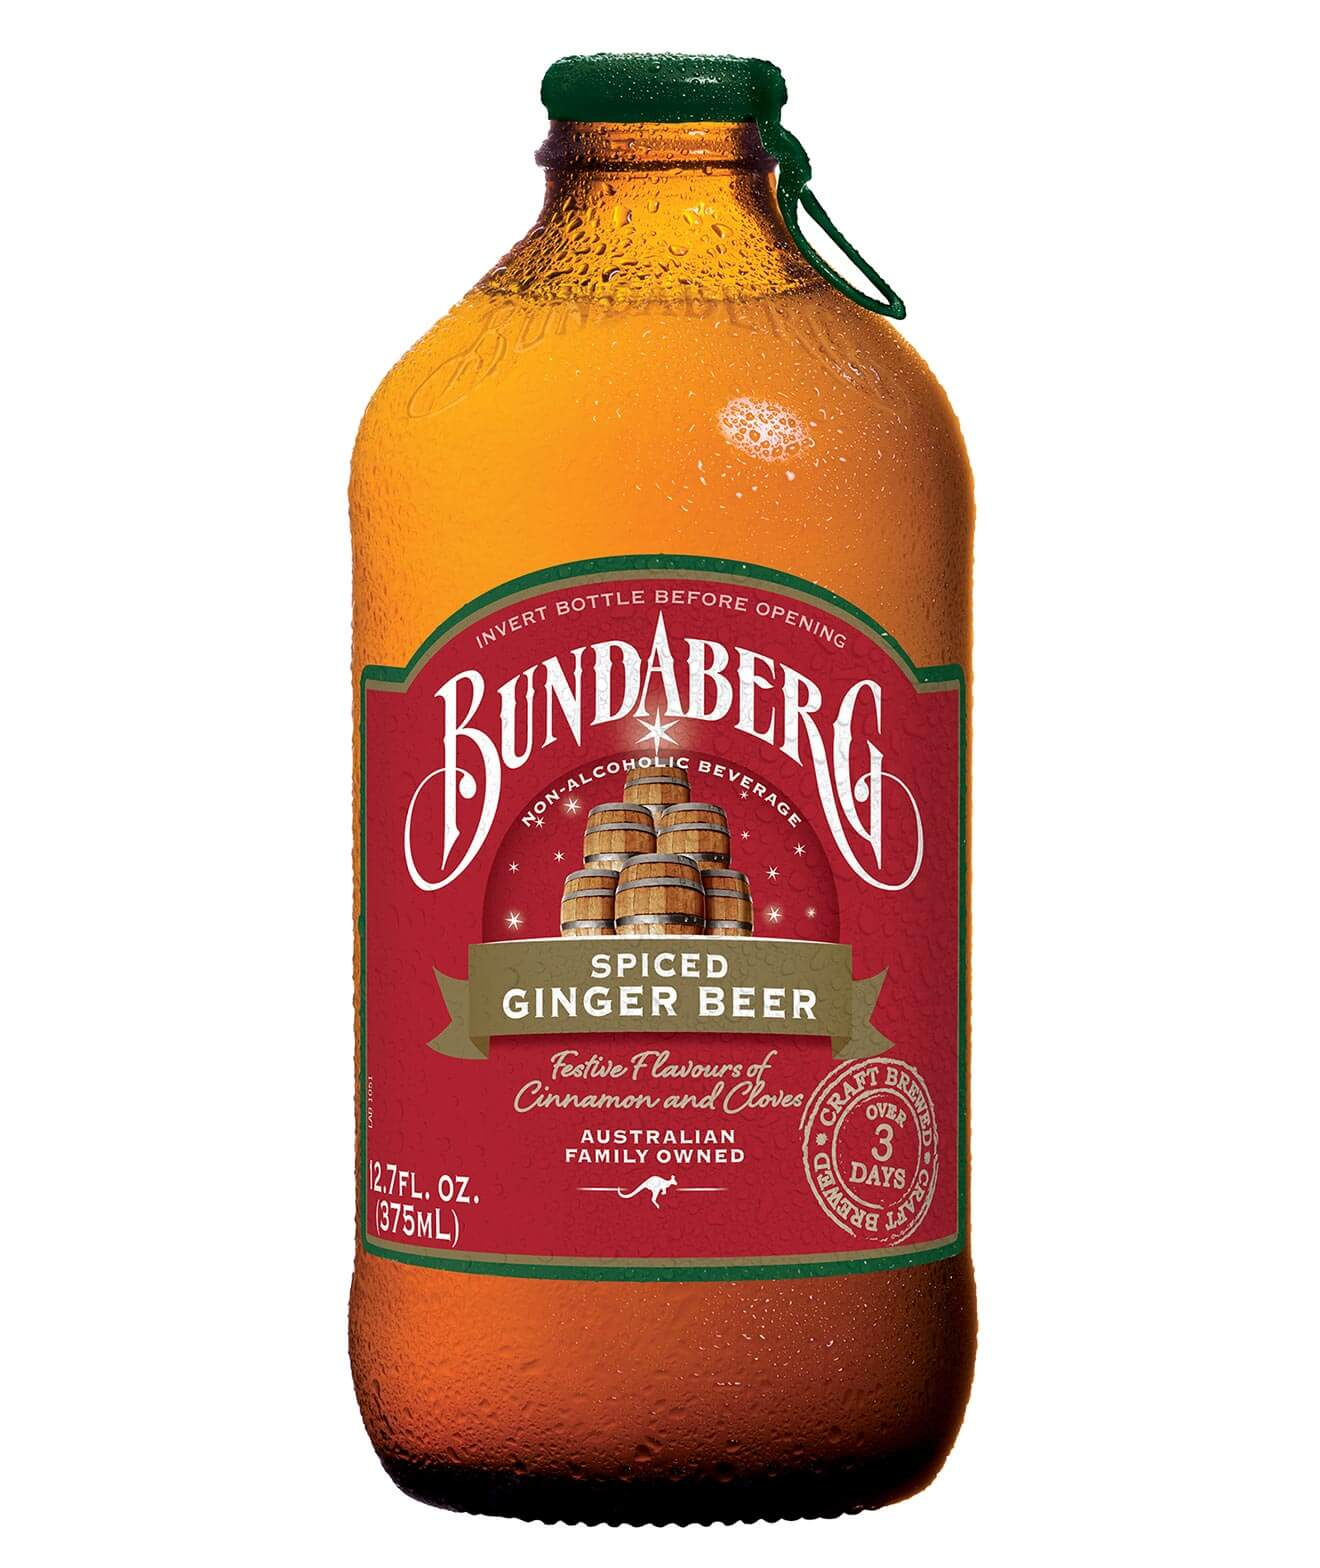 Bundaberg Limited Release Spiced Ginger Beer, bottle